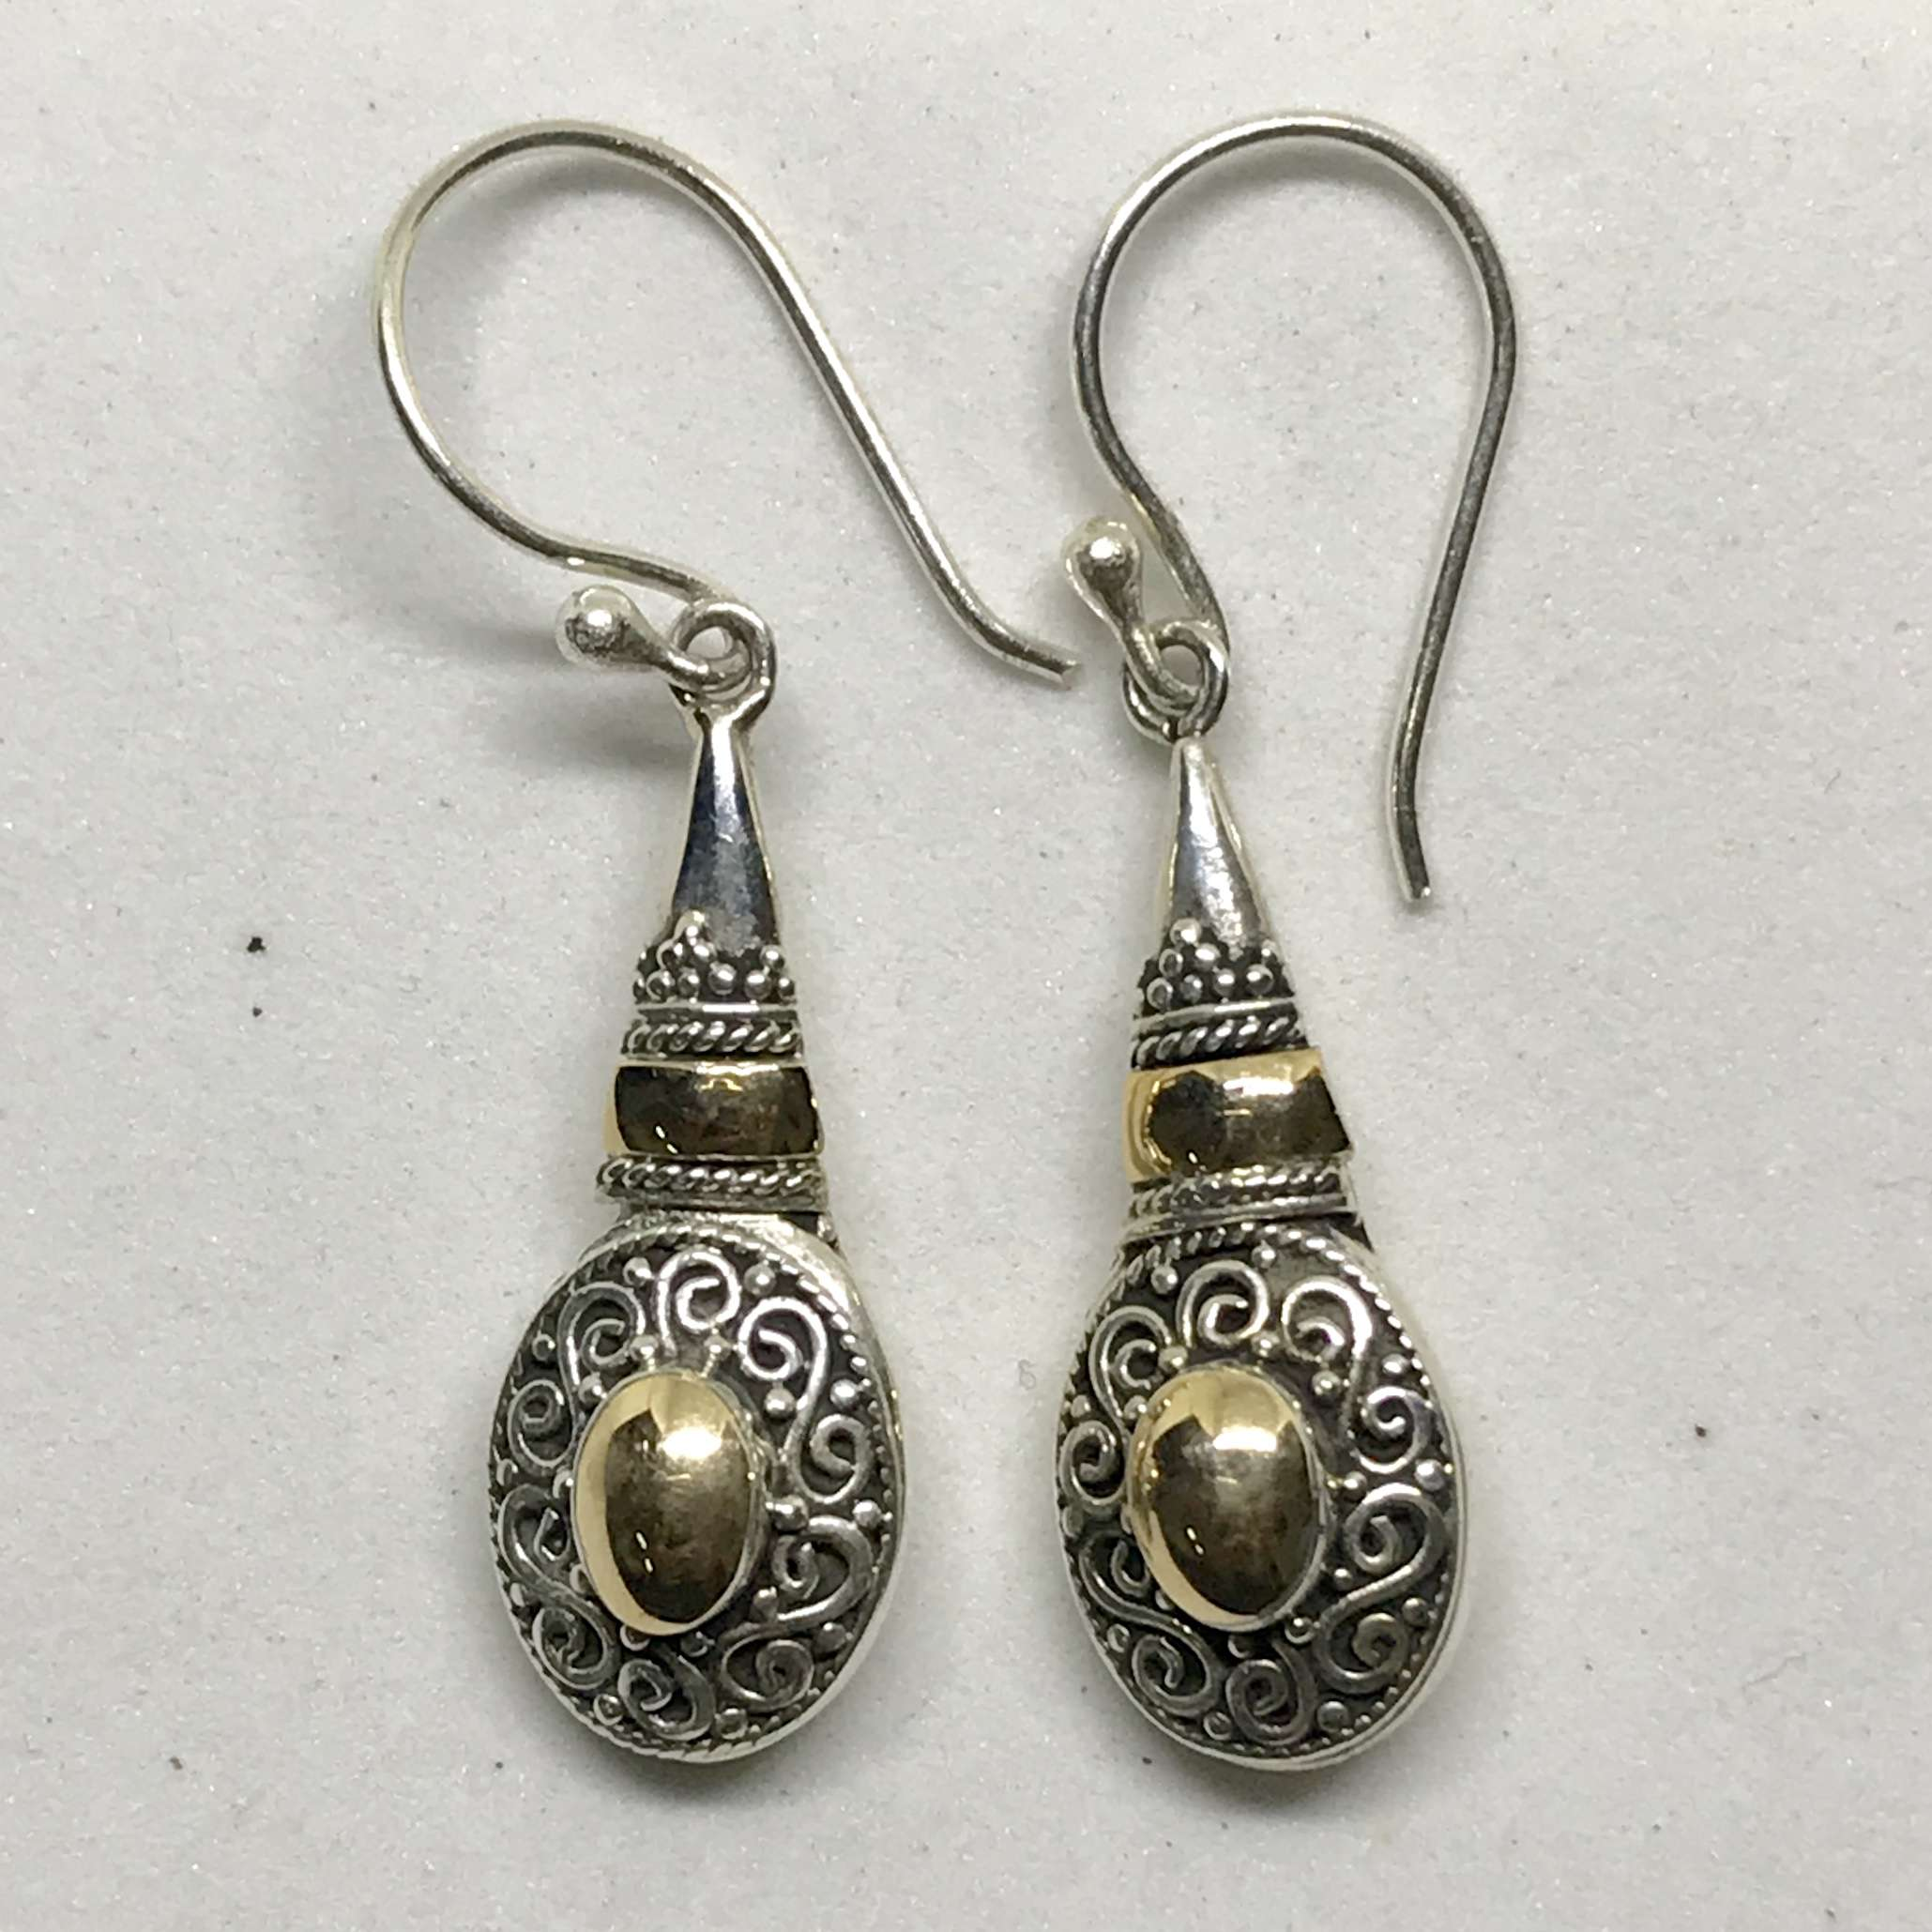 BALI SILVER EARRINGS WITH GOLD